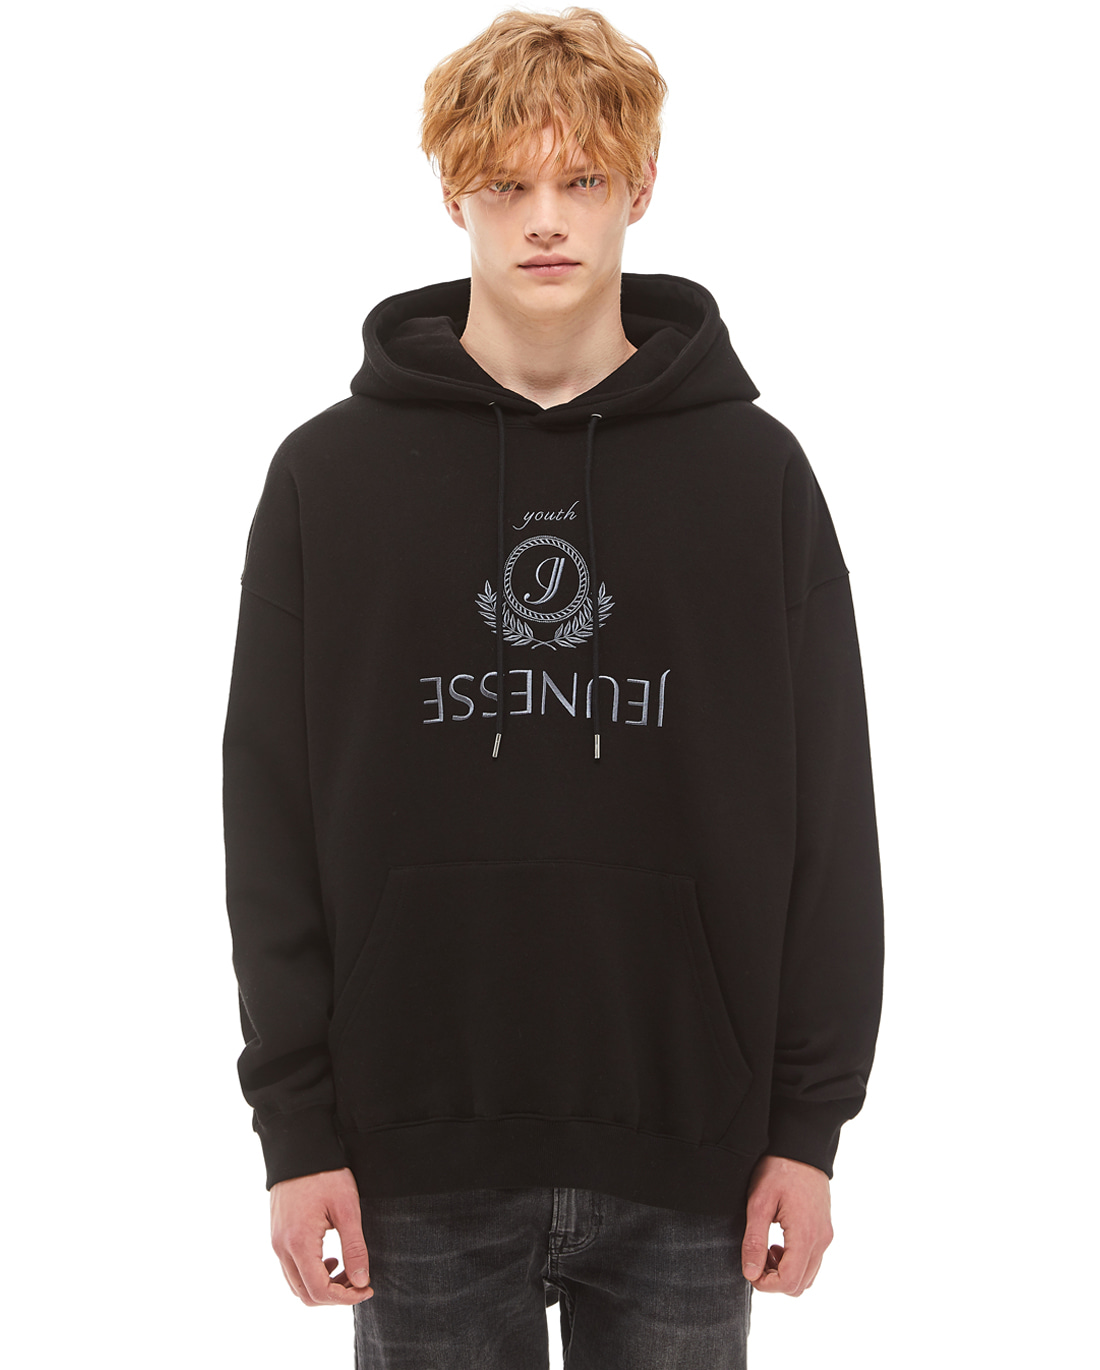 Jeunesse Embroidery Hoodie Black (4단 헤비 쭈리)